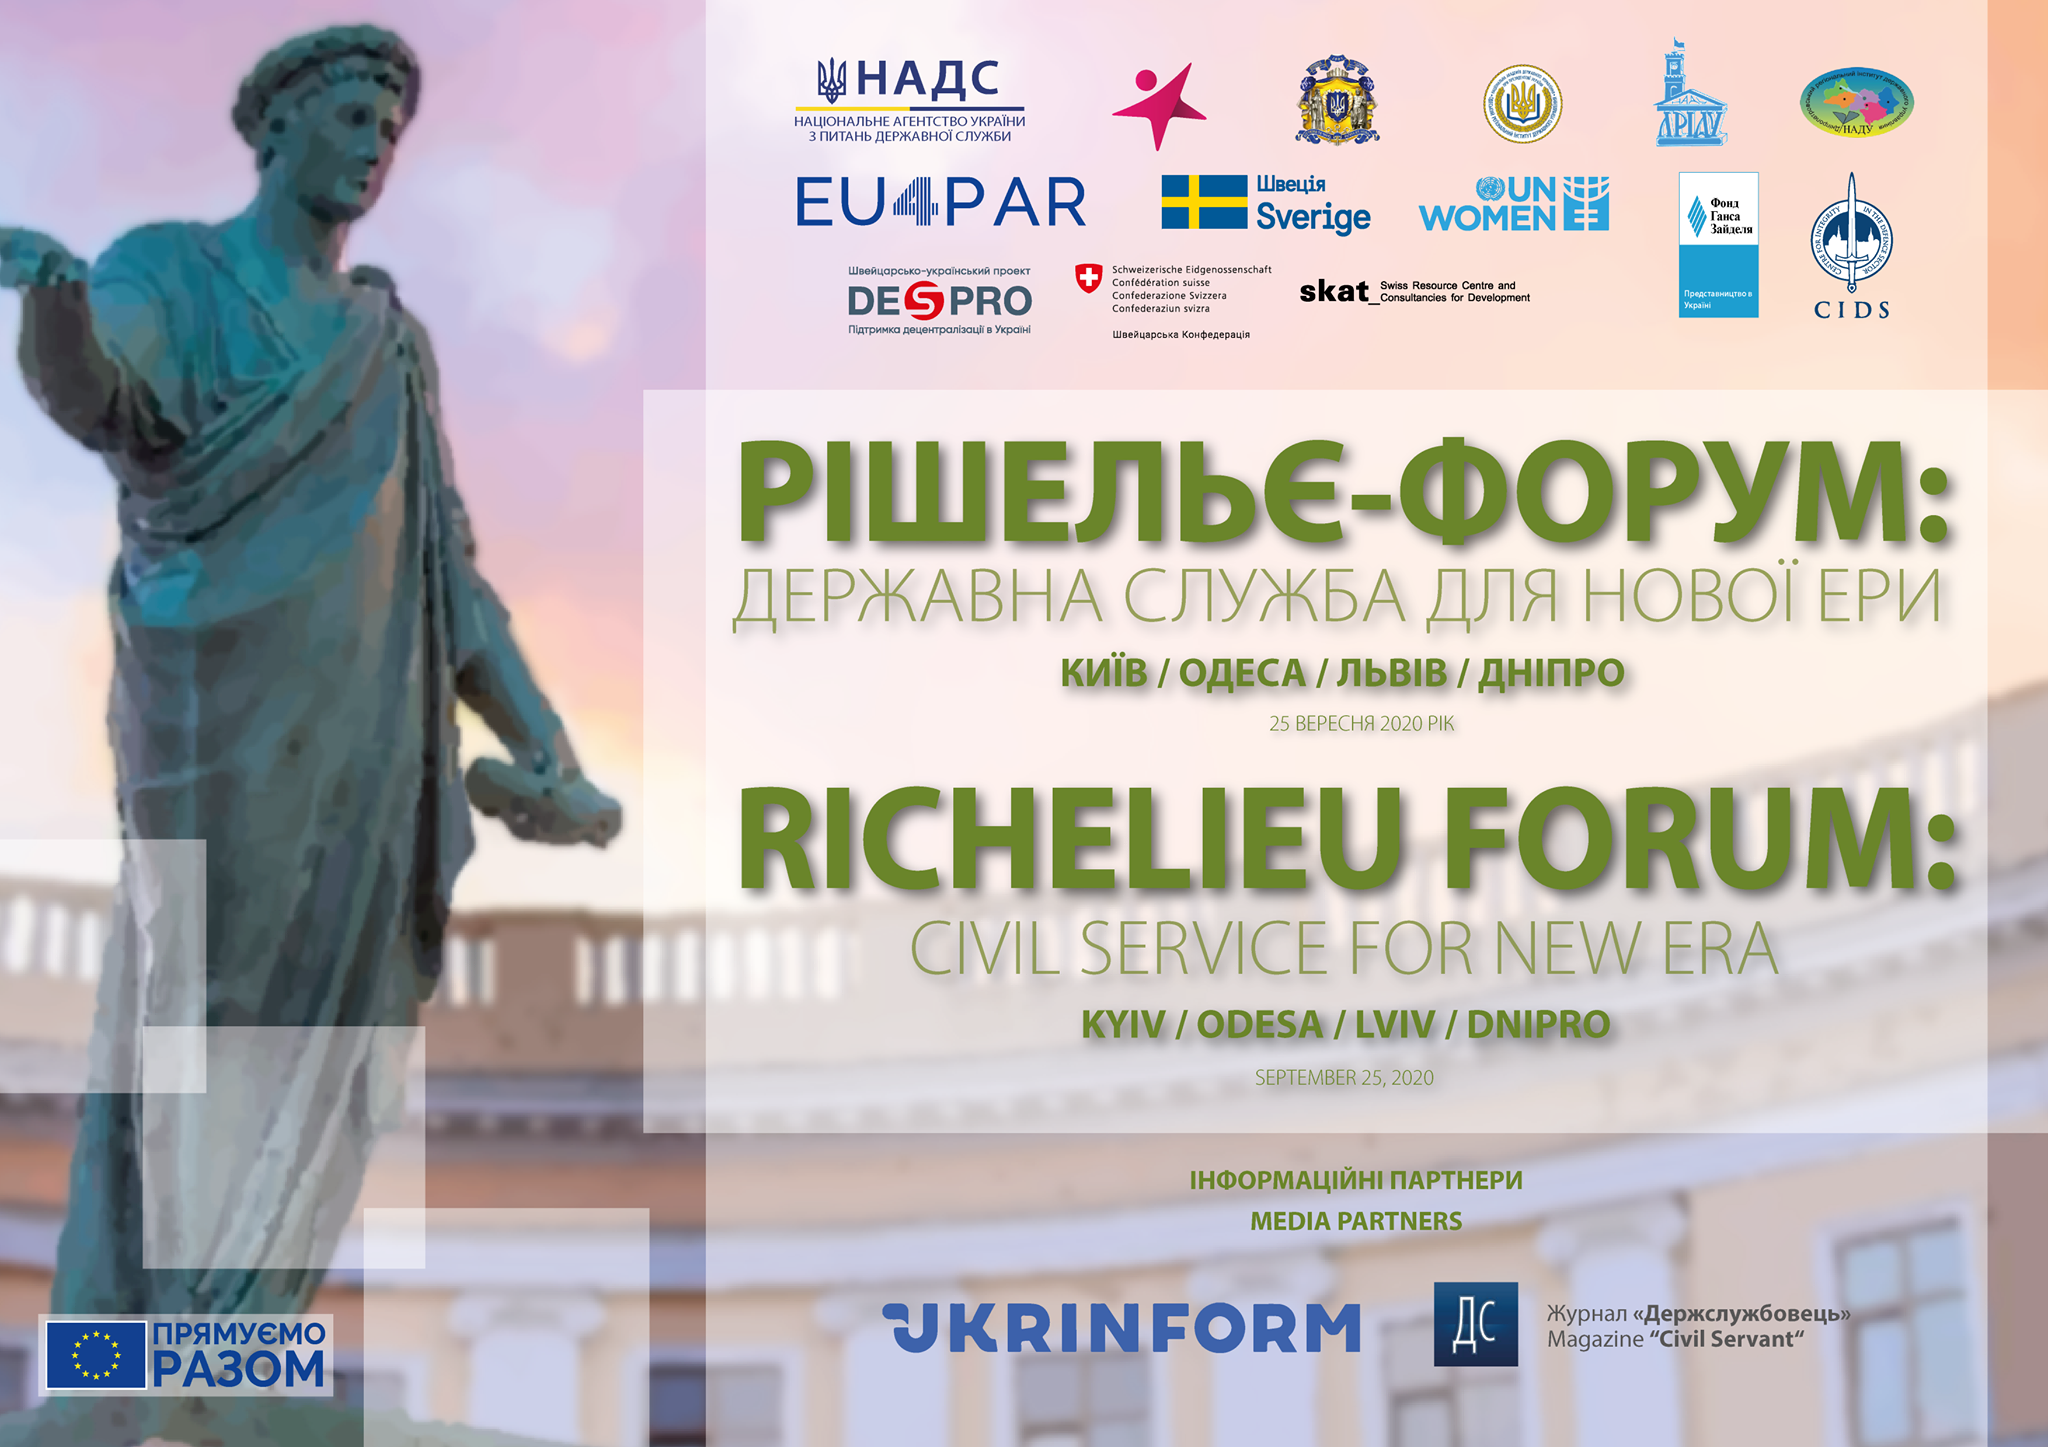 The Richelieu-Forum: State Service for the New Era Kyiv/Odesa/Lviv/Dnipro